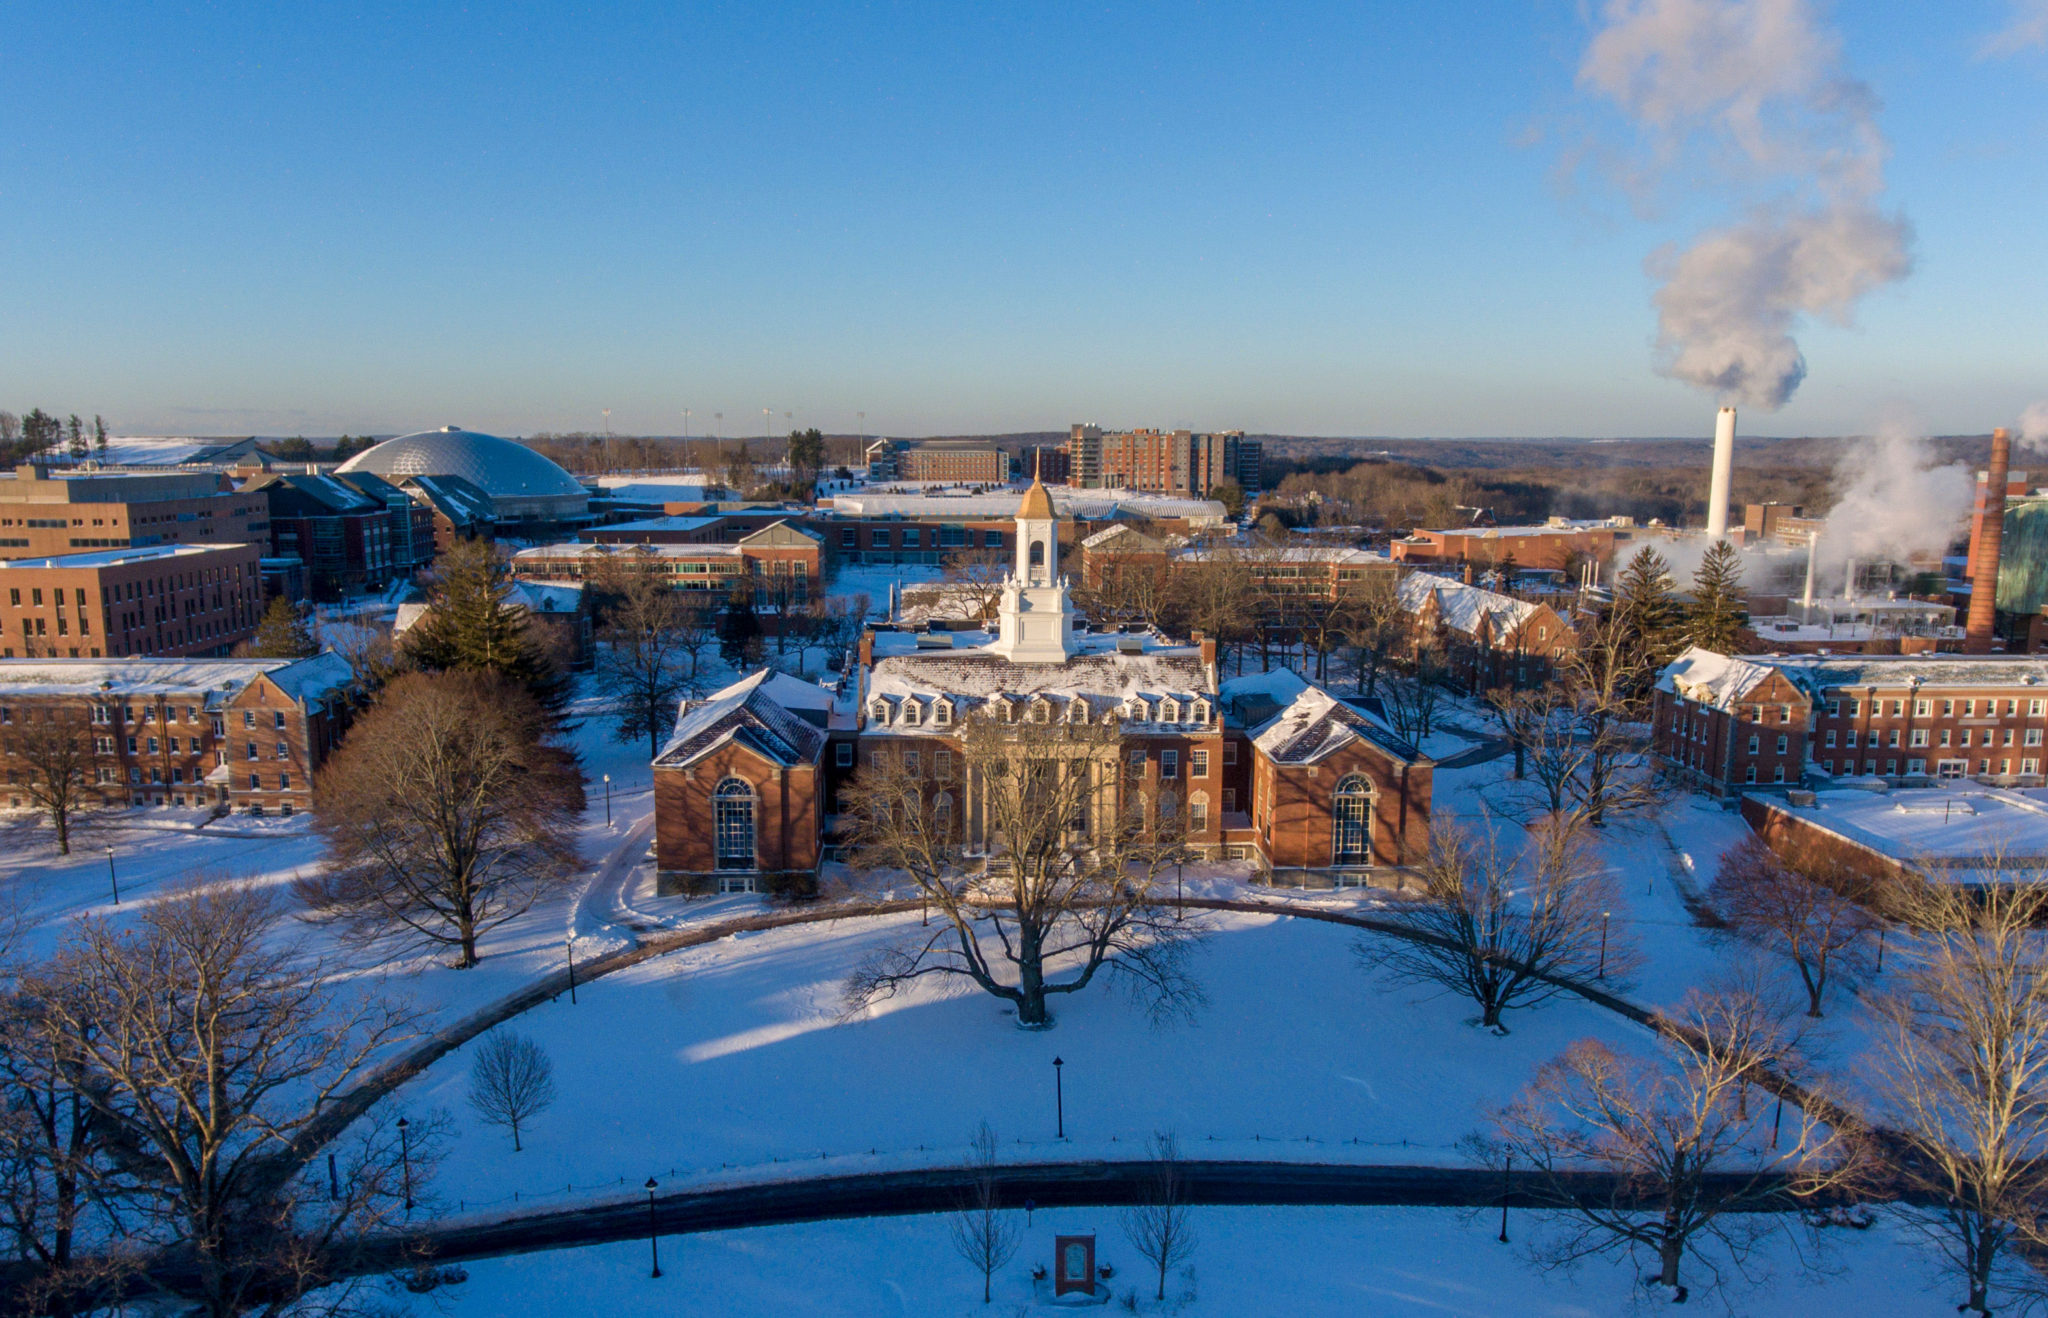 Wilbur Cross in the snow from an aerial view